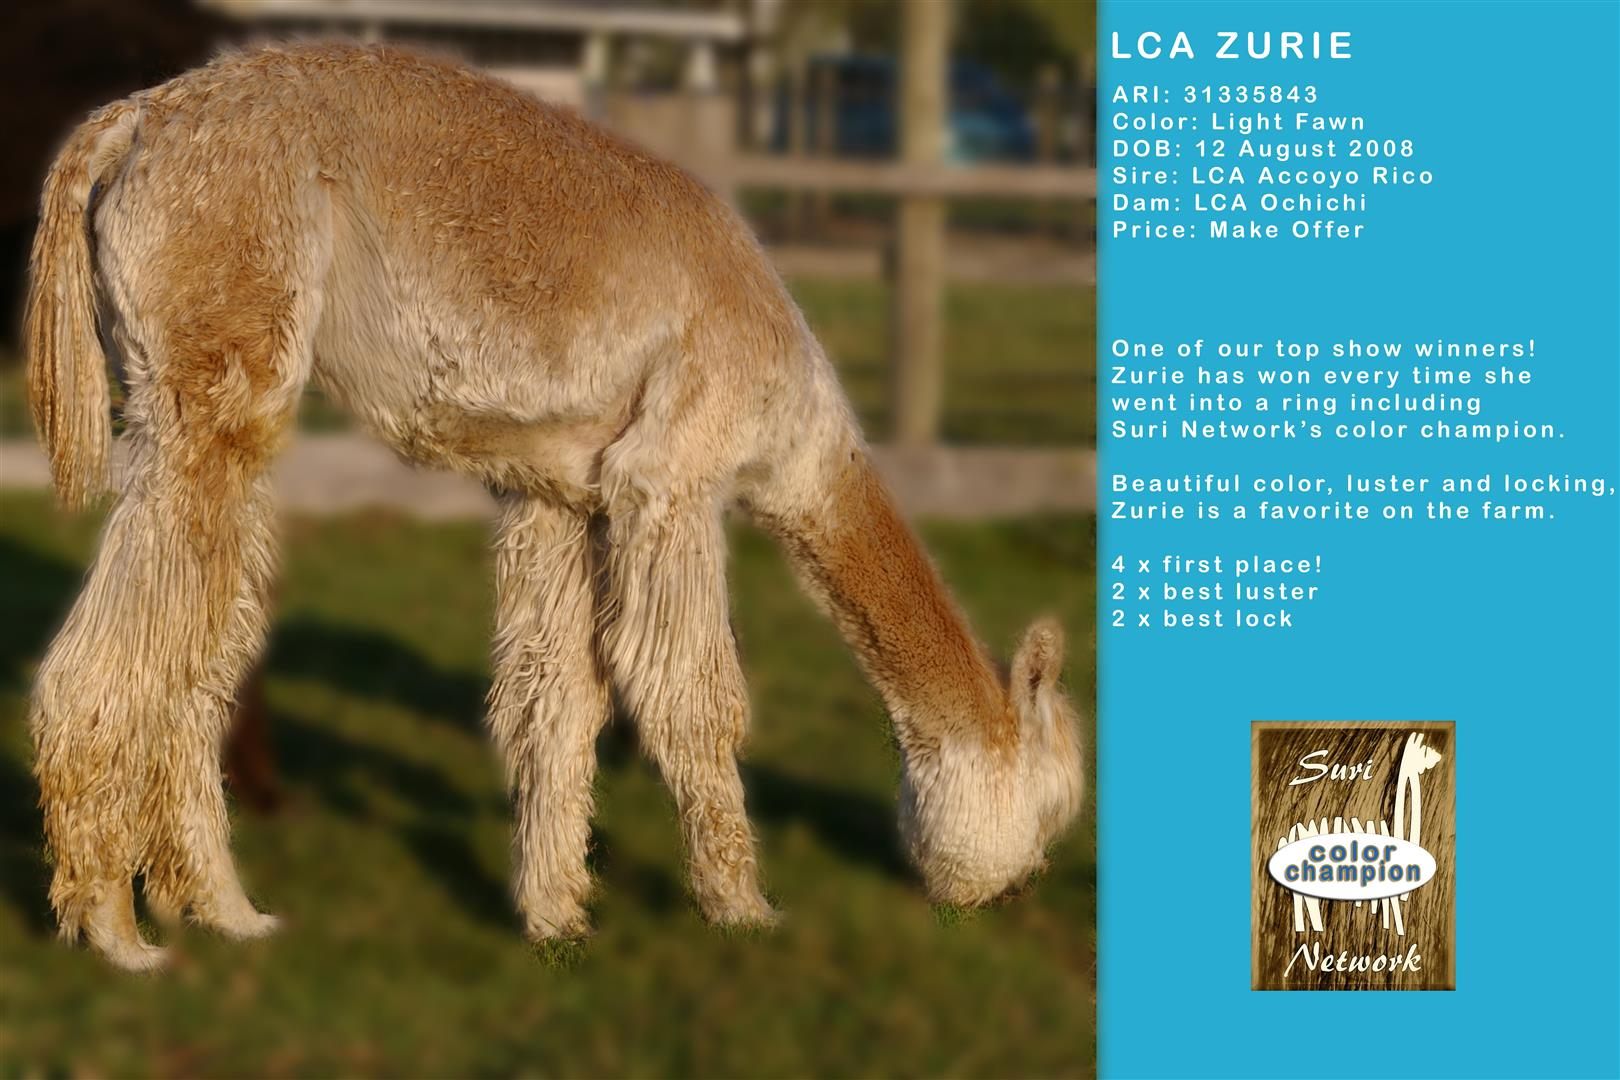 LCA Zurie female alpaca for sale